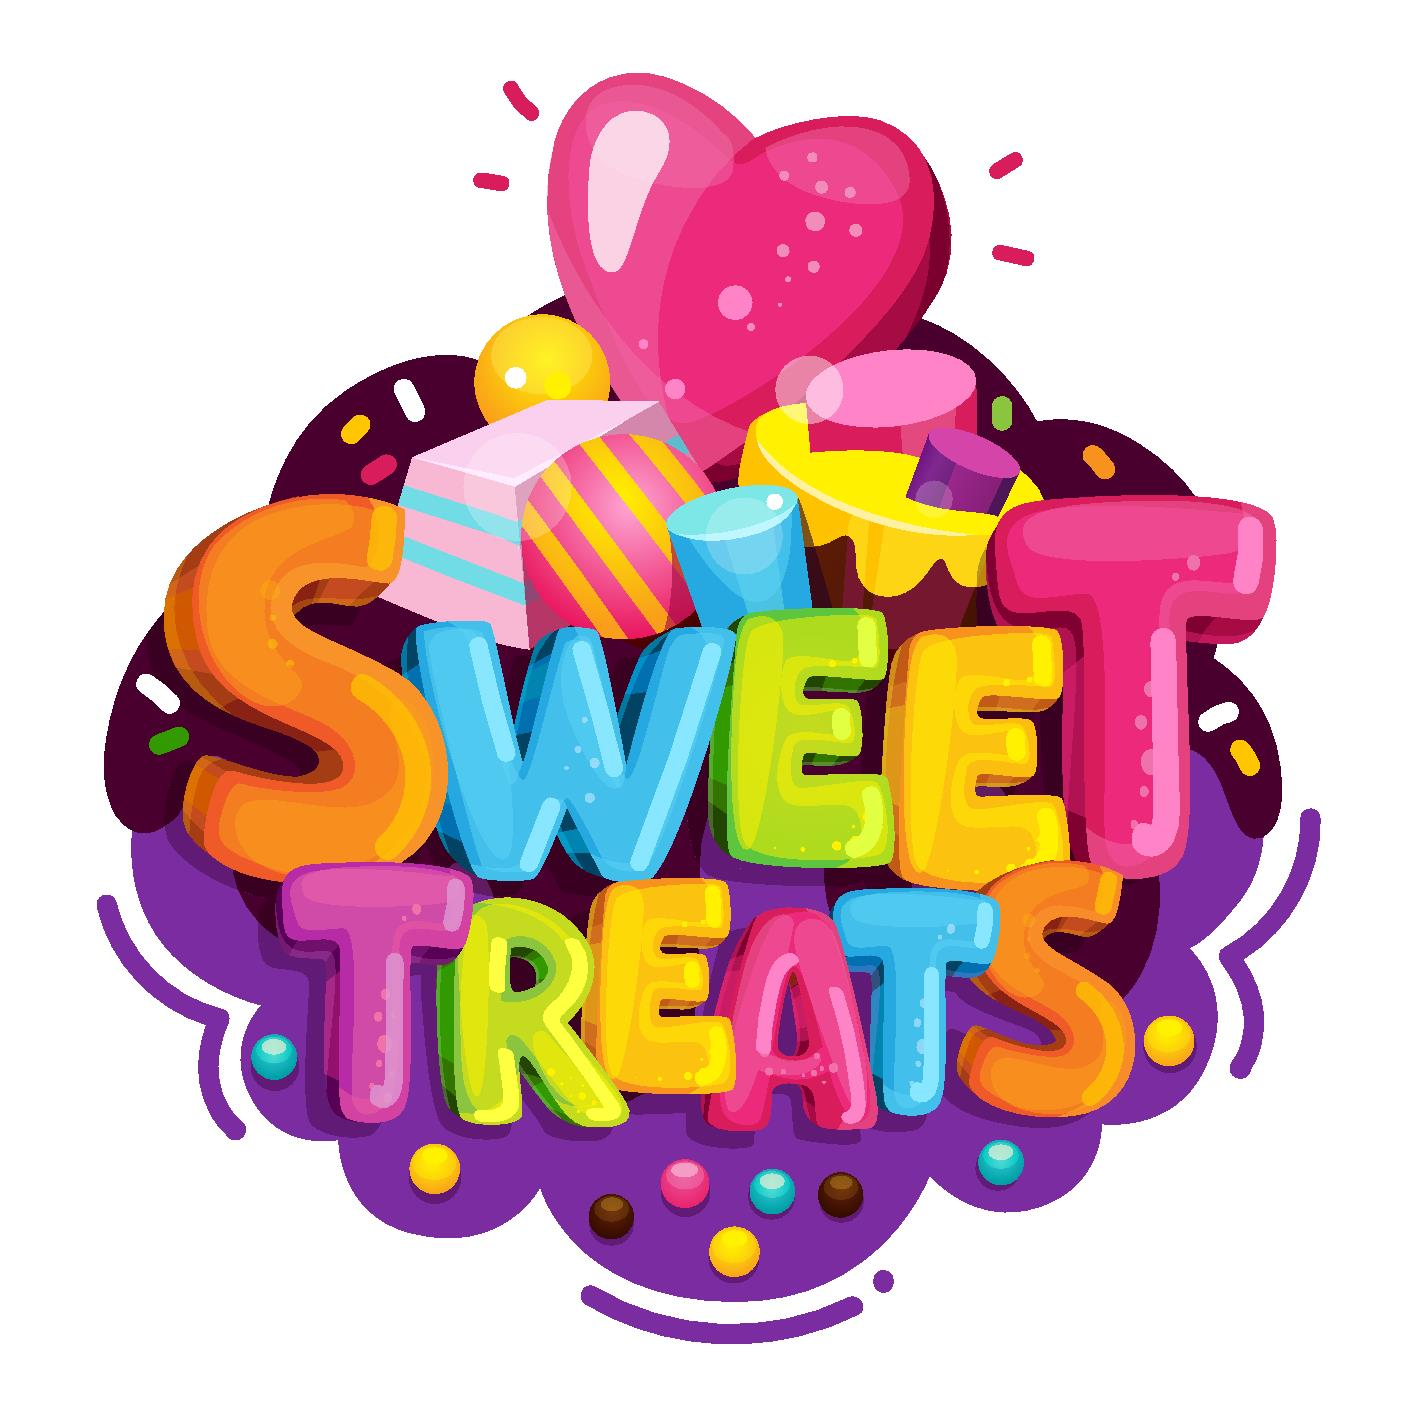 Sonoran Sweets N Treats primary image